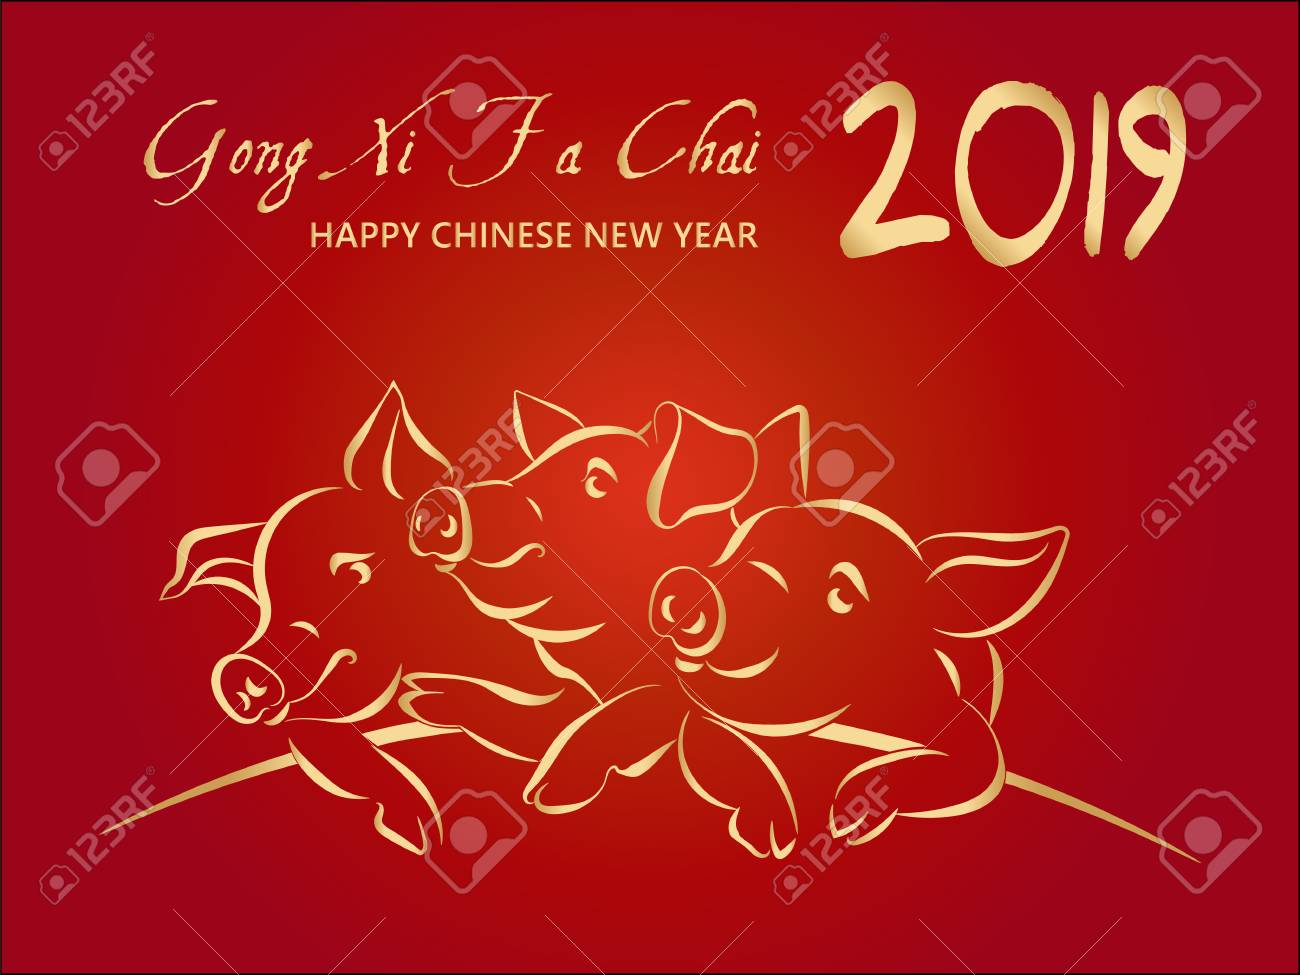 2019 happy chinese new year greeting card with 3 gold pigs translation gong xi